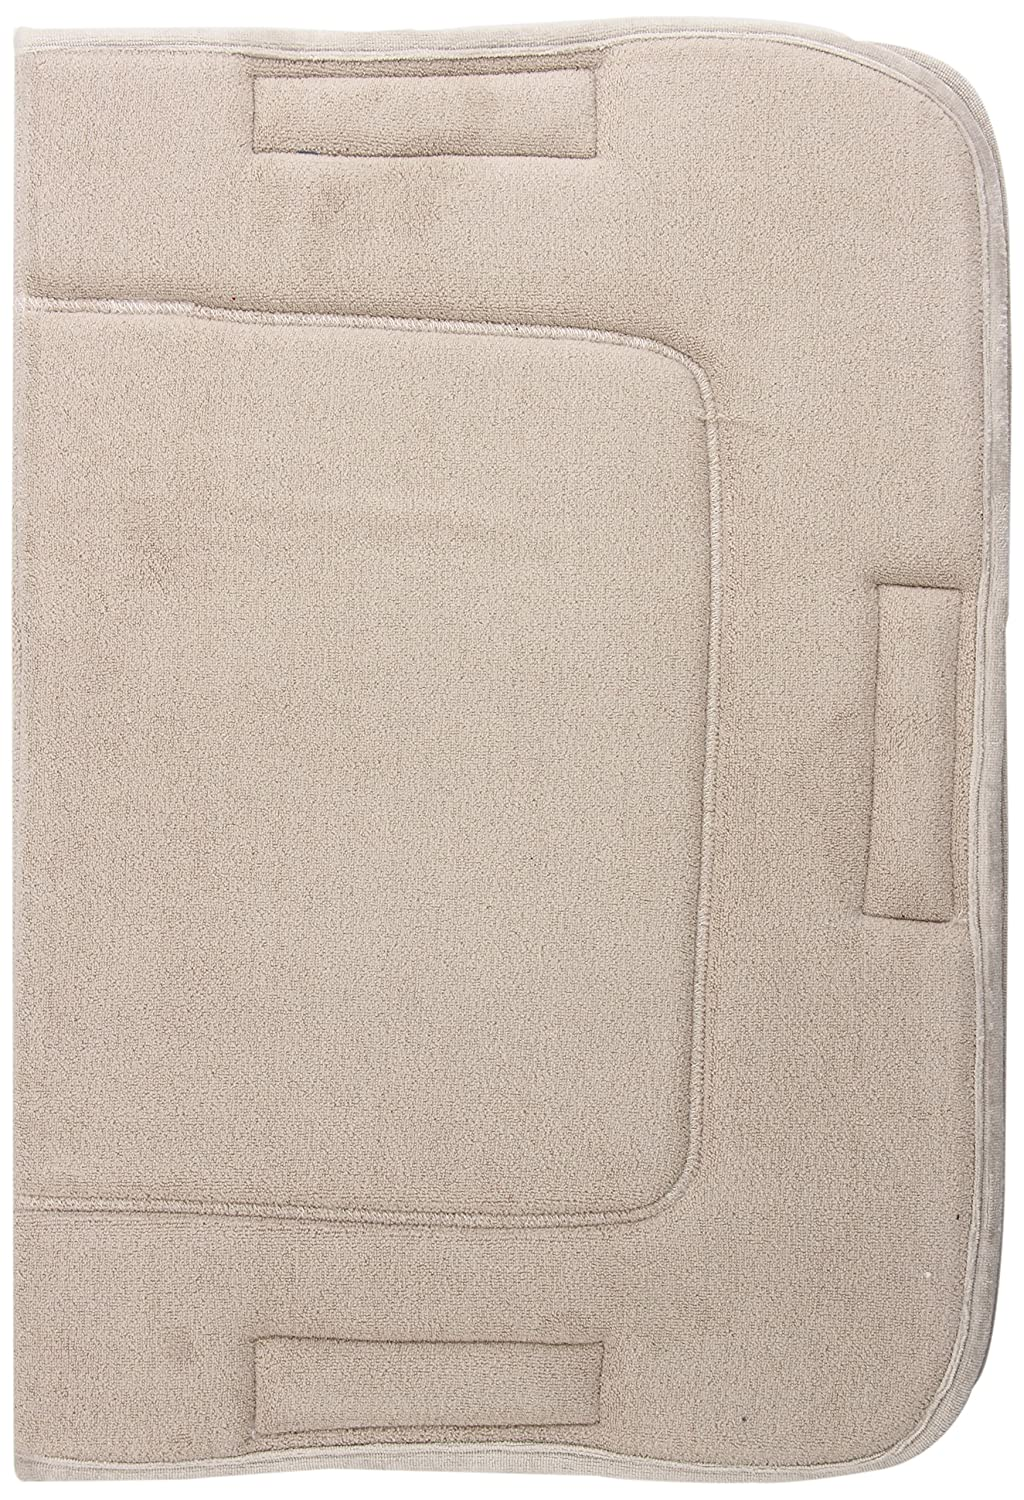 "Relief Pak 11-1360 Standard Terry Cover Hot Pack, 27"" Length x 19.5"" Width"